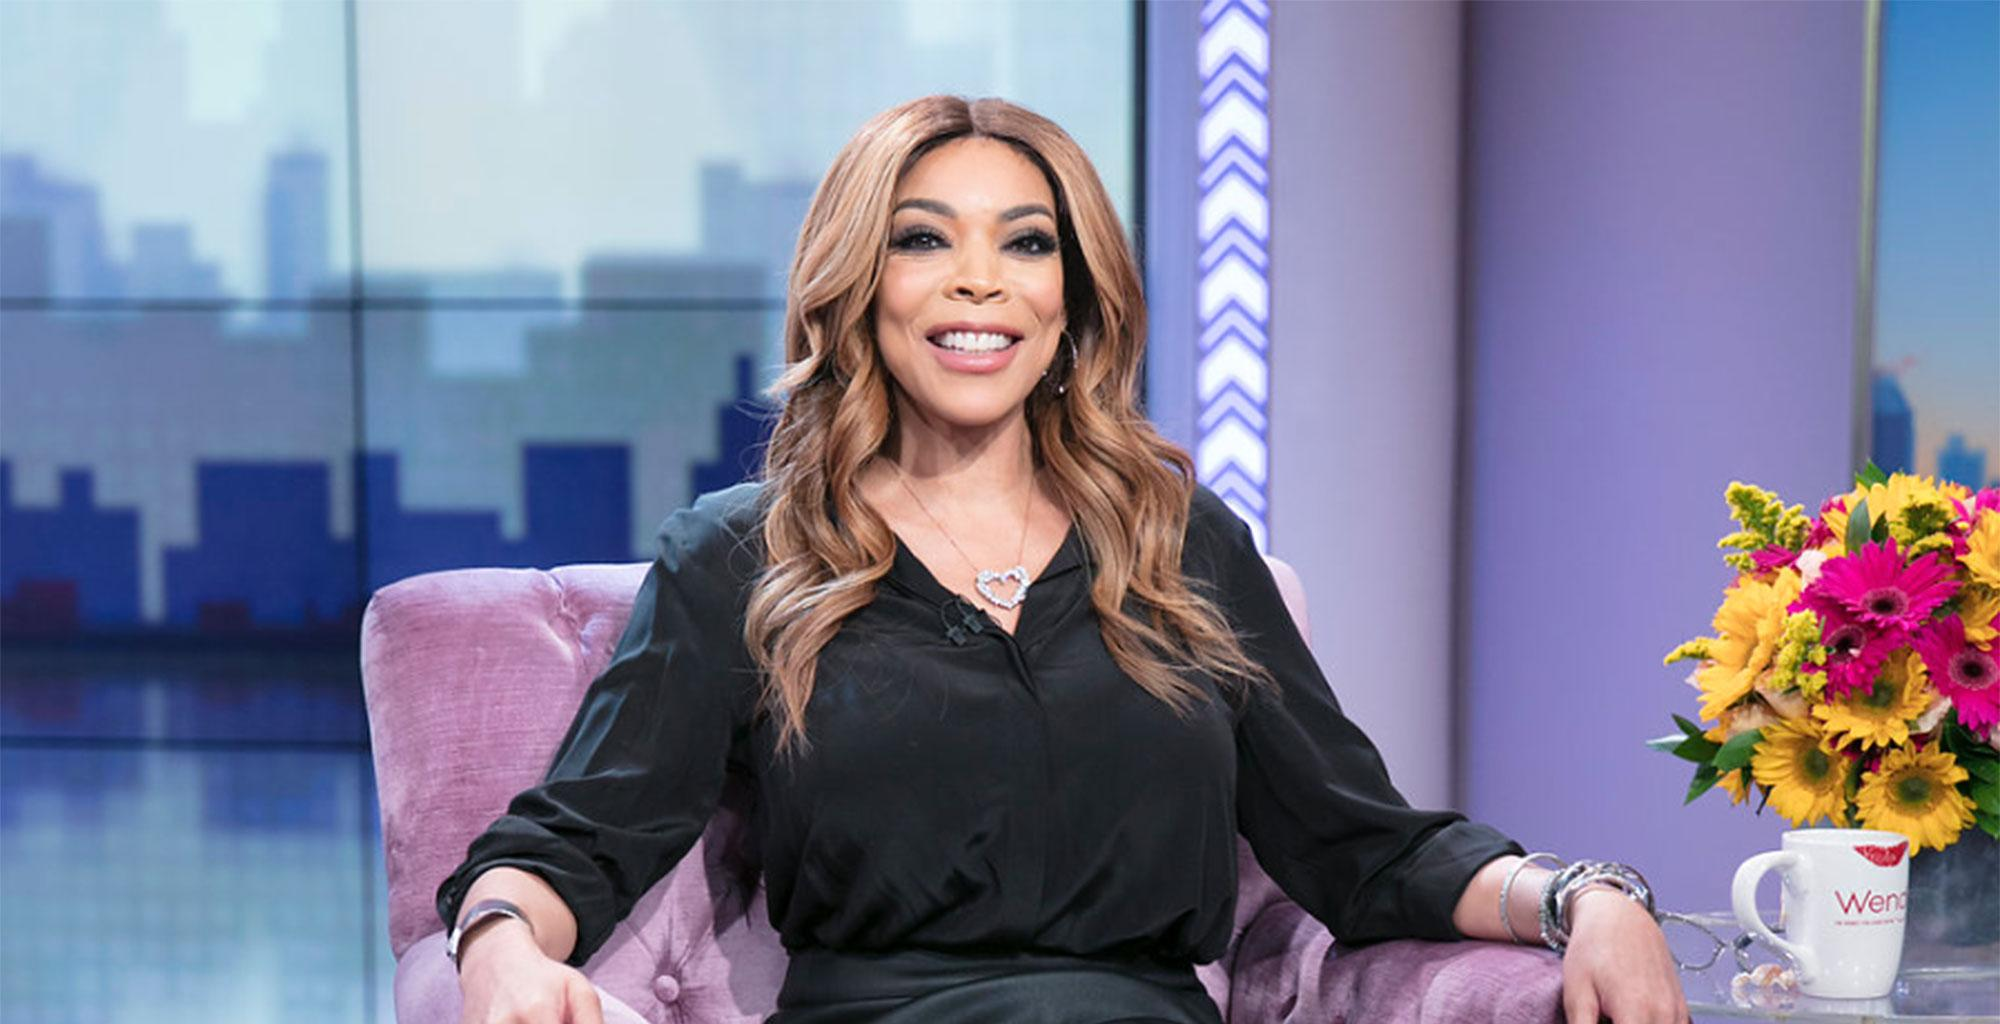 Wendy Williams' Fans Are Upset After She Says She Wants To Remain Friends With Kevin Hunter